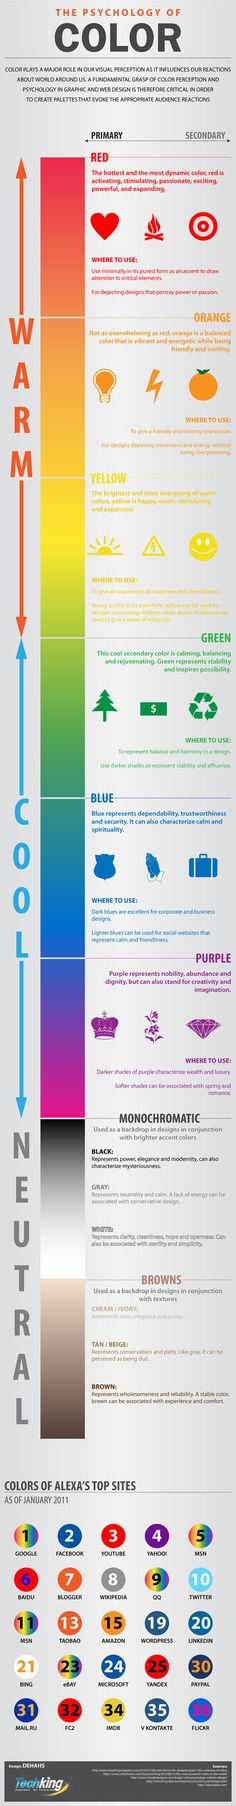 The psycholgy of color #infographic